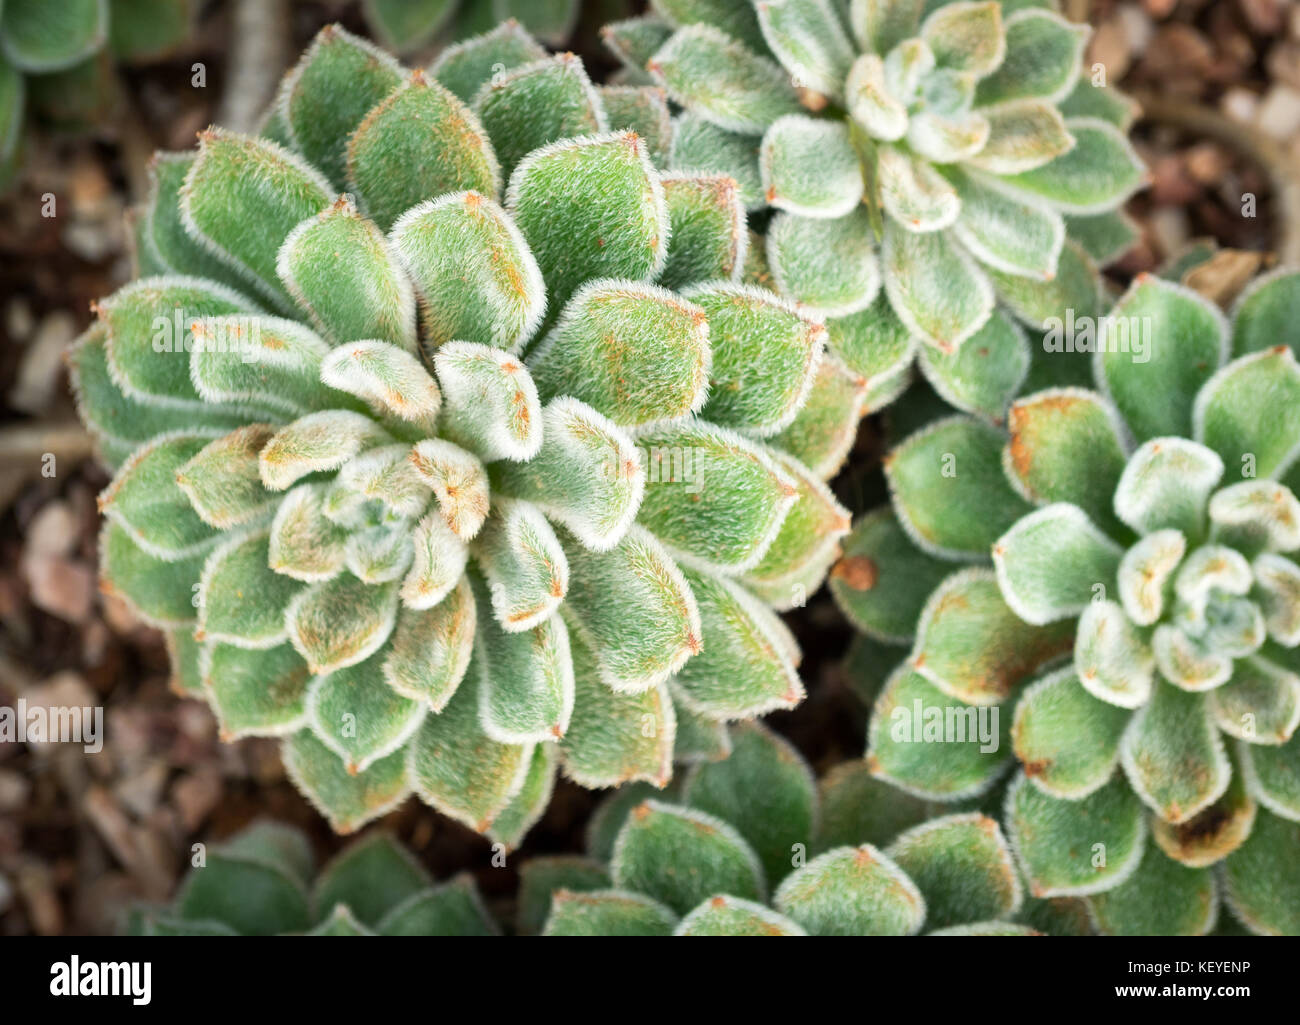 Echeveria 'Doris Taylor' (also known as Woolly Rose) succulent plants at the Muttart Conservatory in Edmonton, - Stock Image